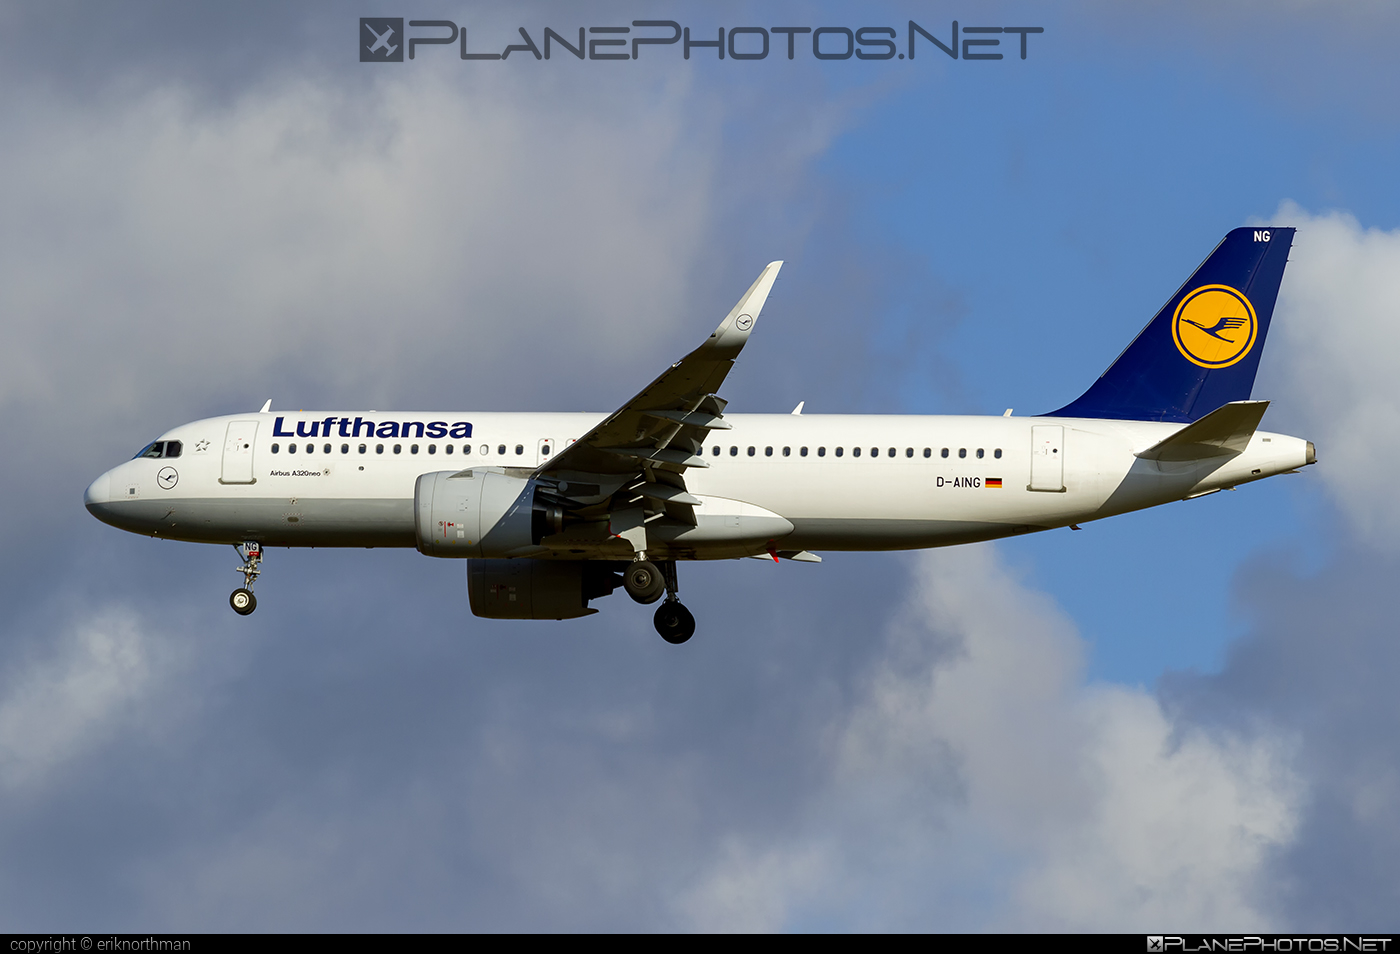 Airbus A320-271N - D-AING operated by Lufthansa #a320 #a320family #a320neo #airbus #airbus320 #lufthansa